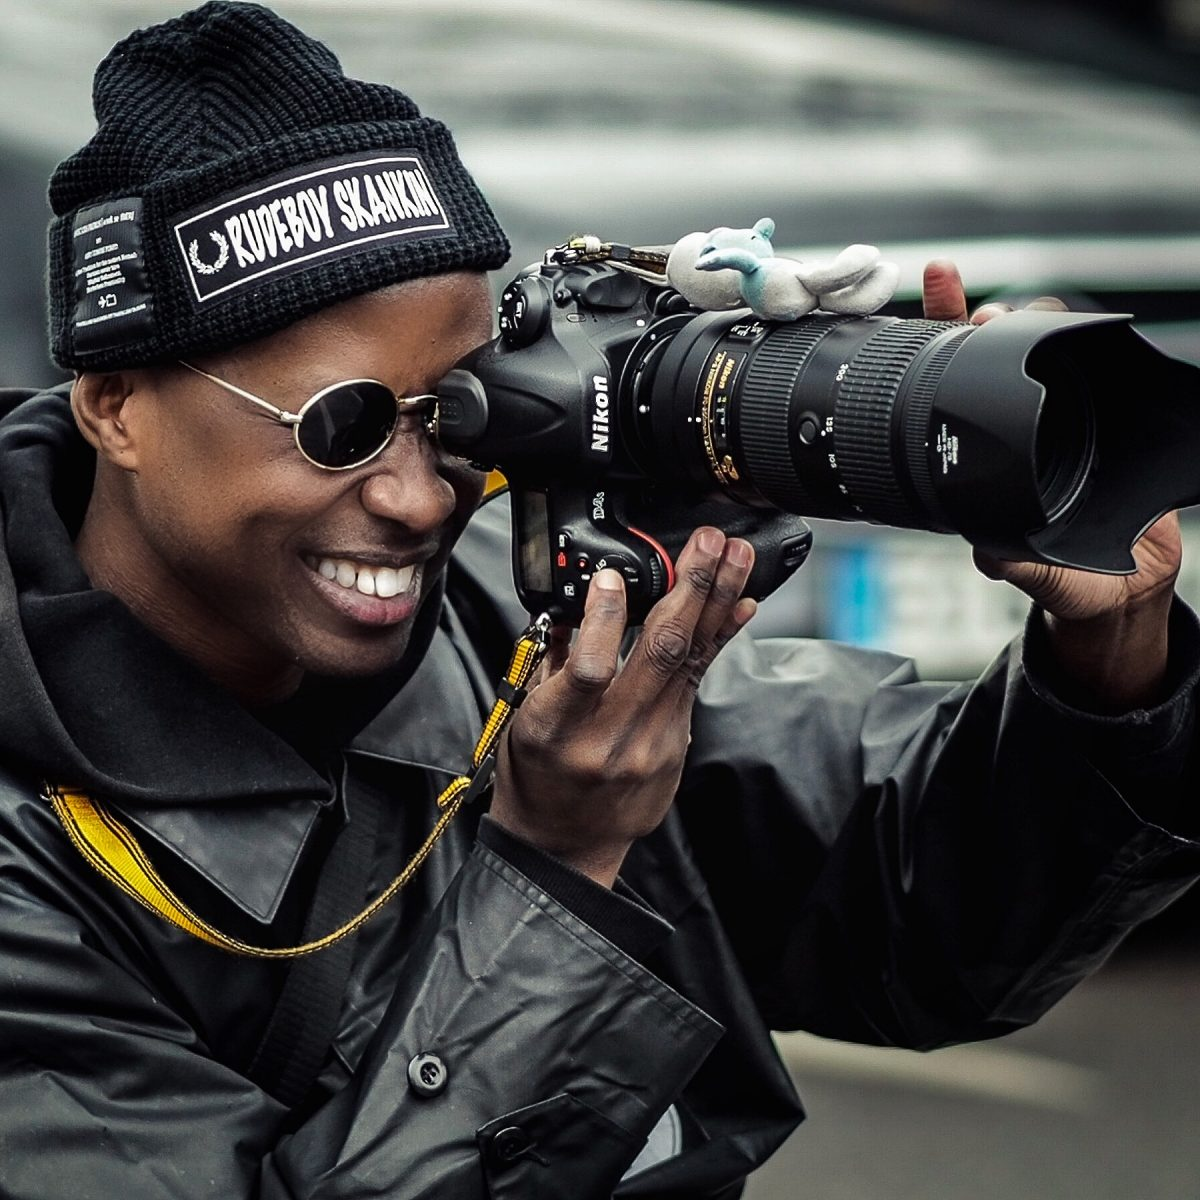 "<span class=""hot"">Hot <i class=""fa fa-bolt""></i></span> Street Style Photographer – David Nyanzi 